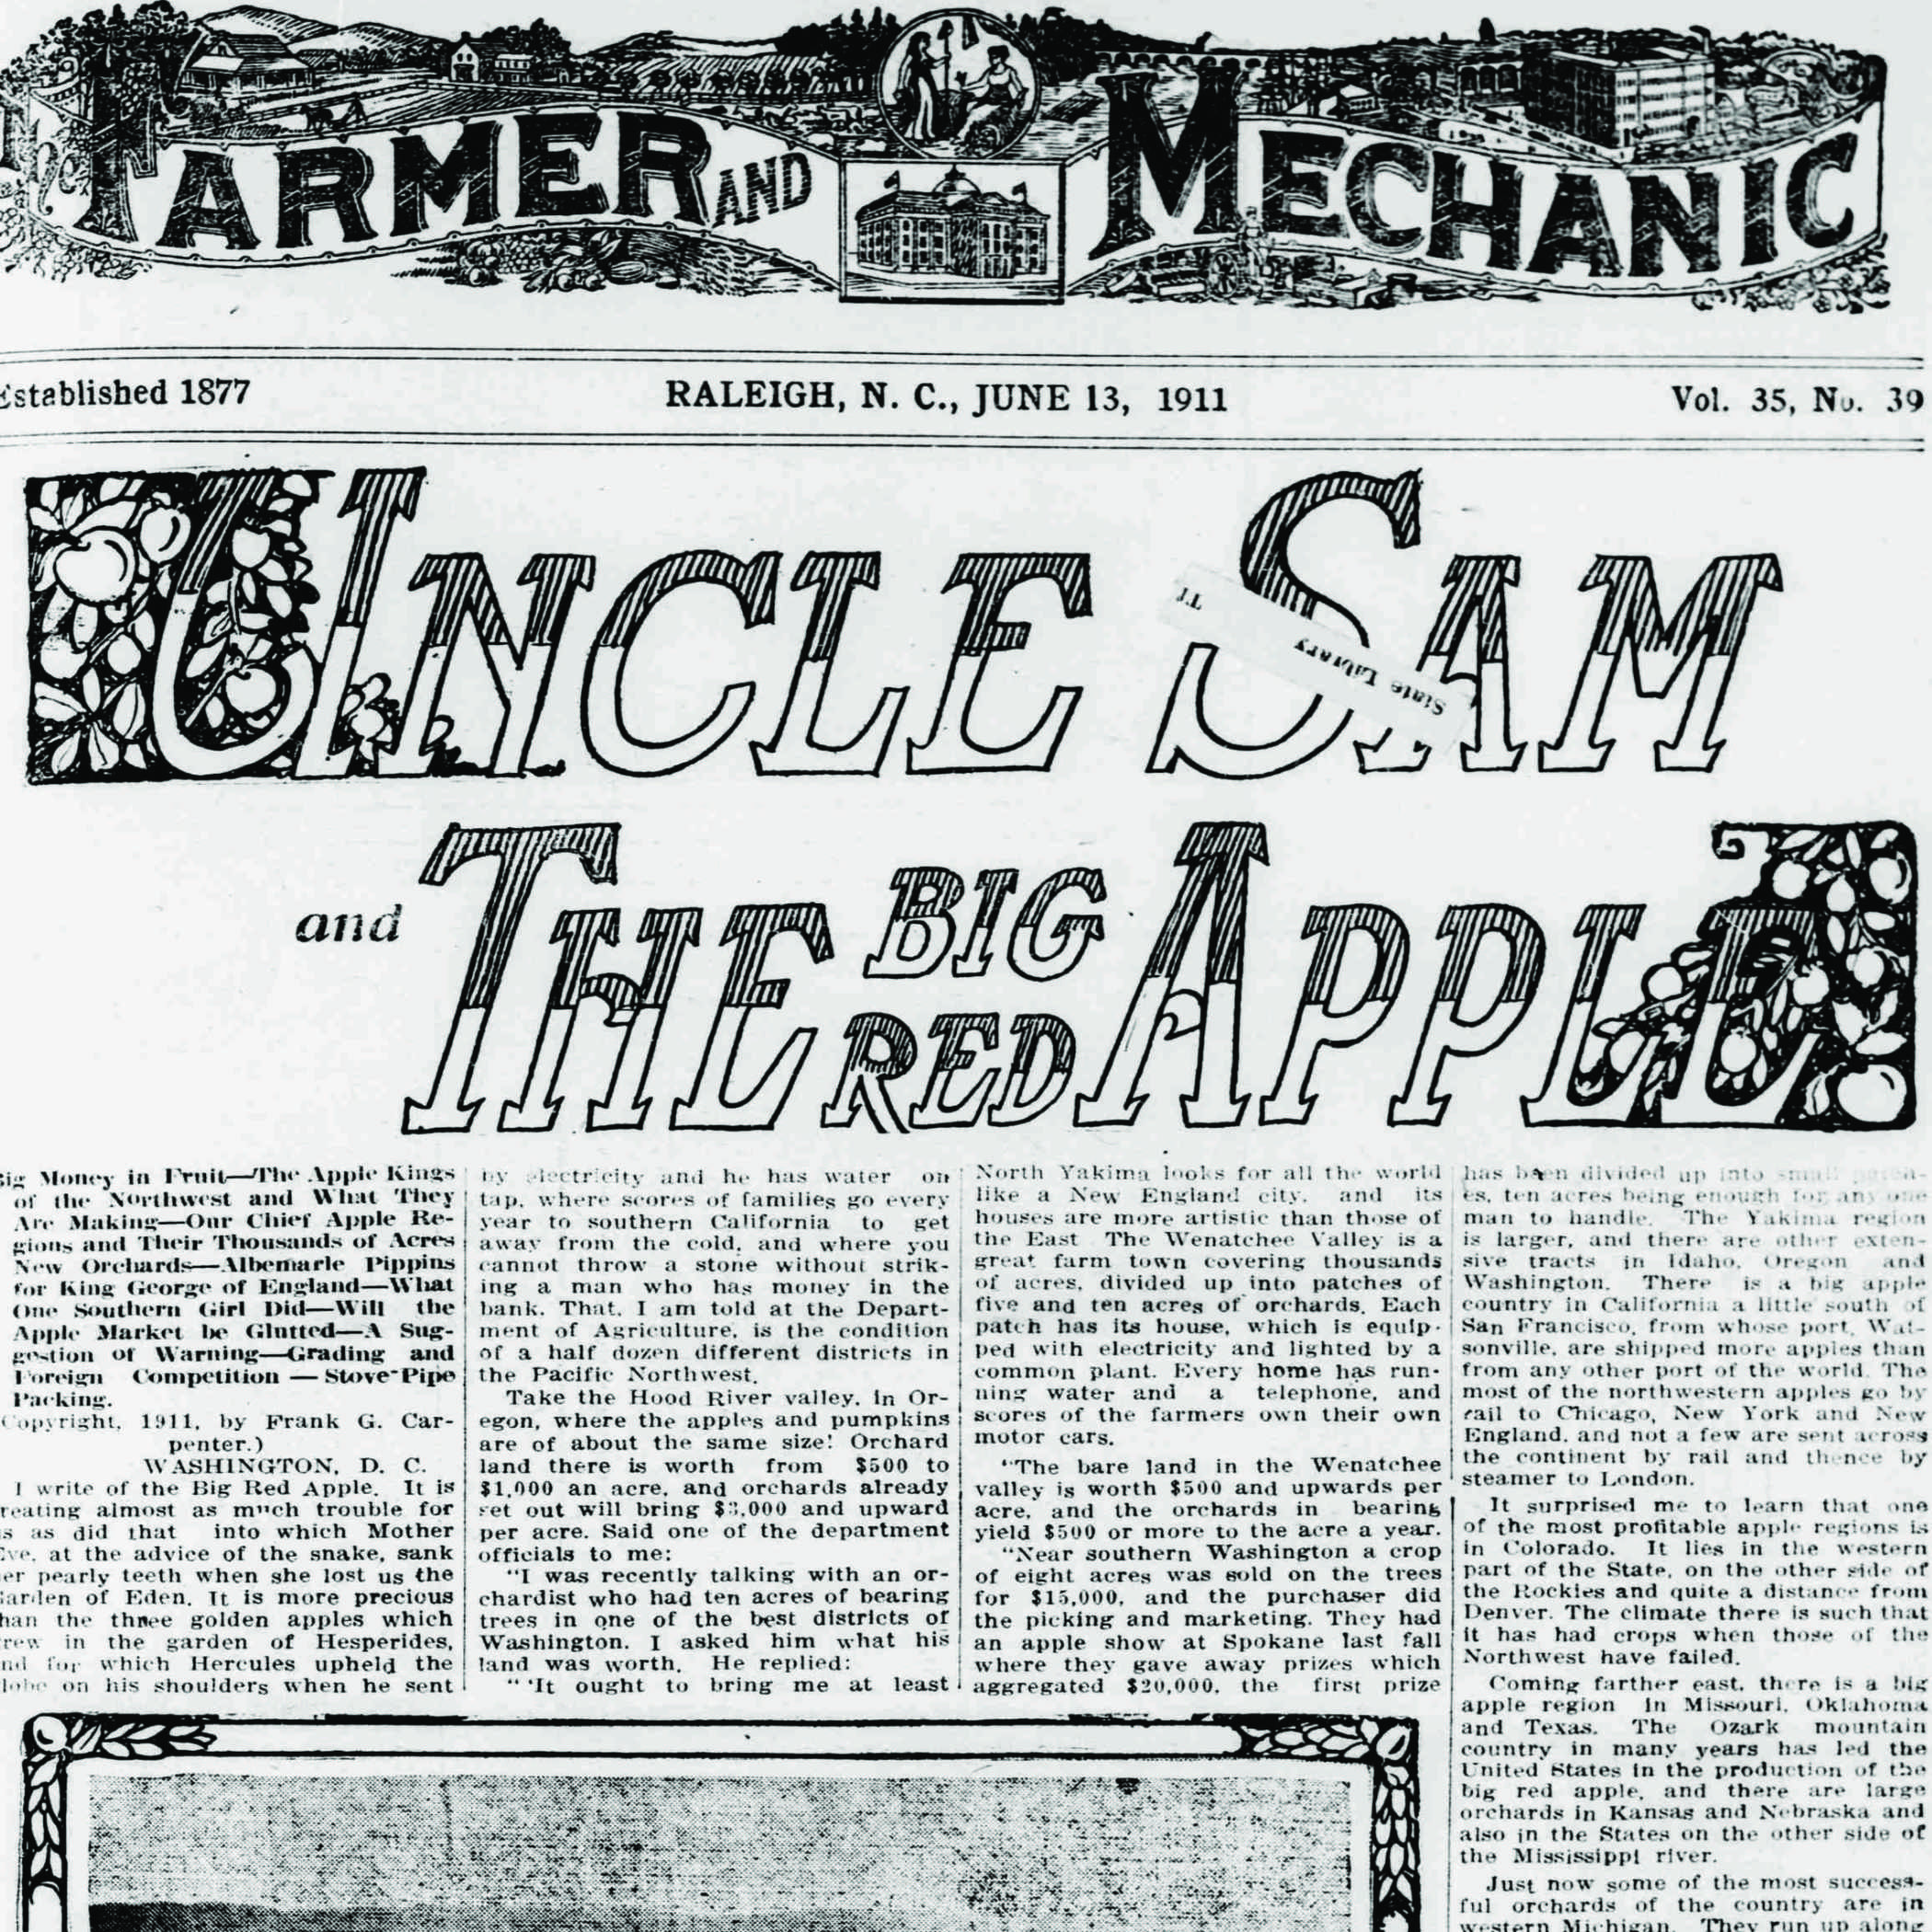 front page of the June 13 1911 edition of the Farmer and Mechanic newspaper